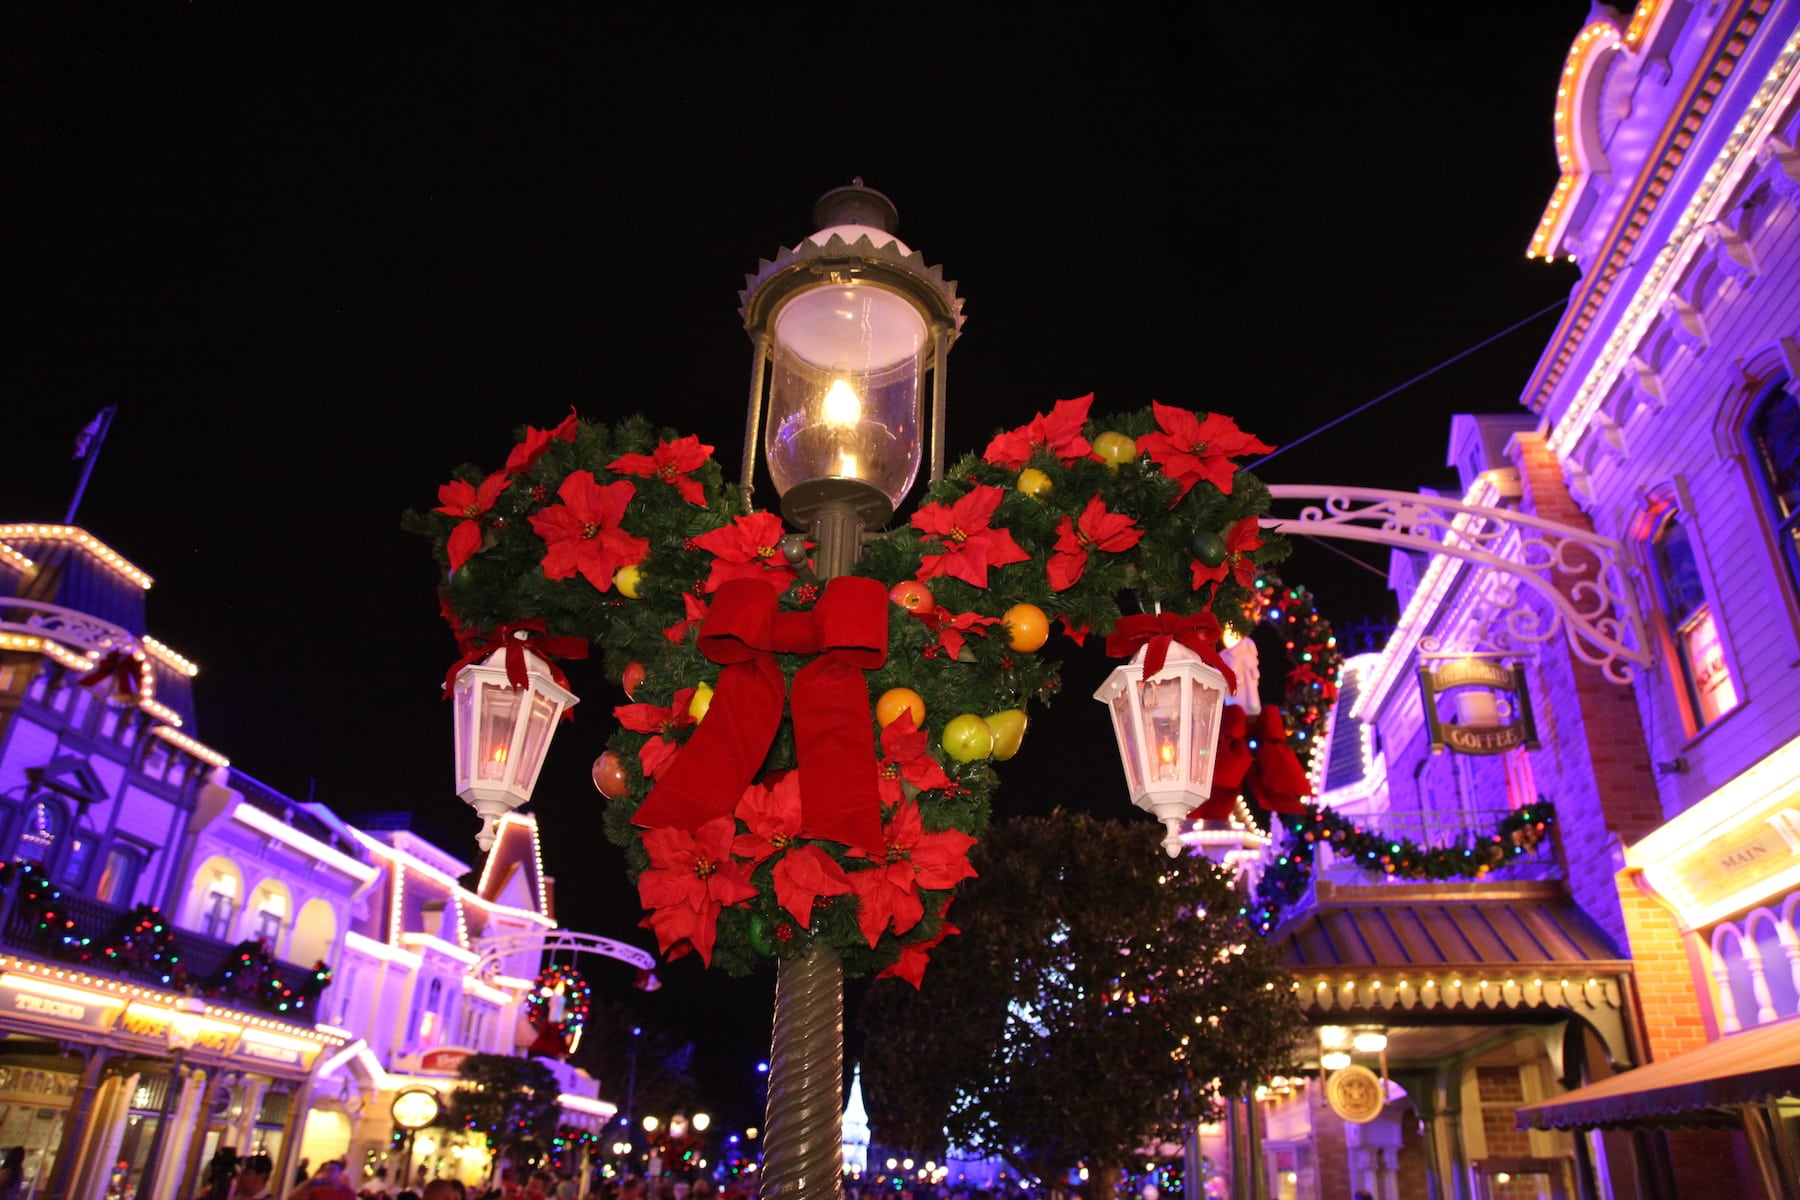 Mickey Mouse Head Shaped Christmas Wreath on Light Post Mickey's Very Merry Christmas Party Magic Kingdom